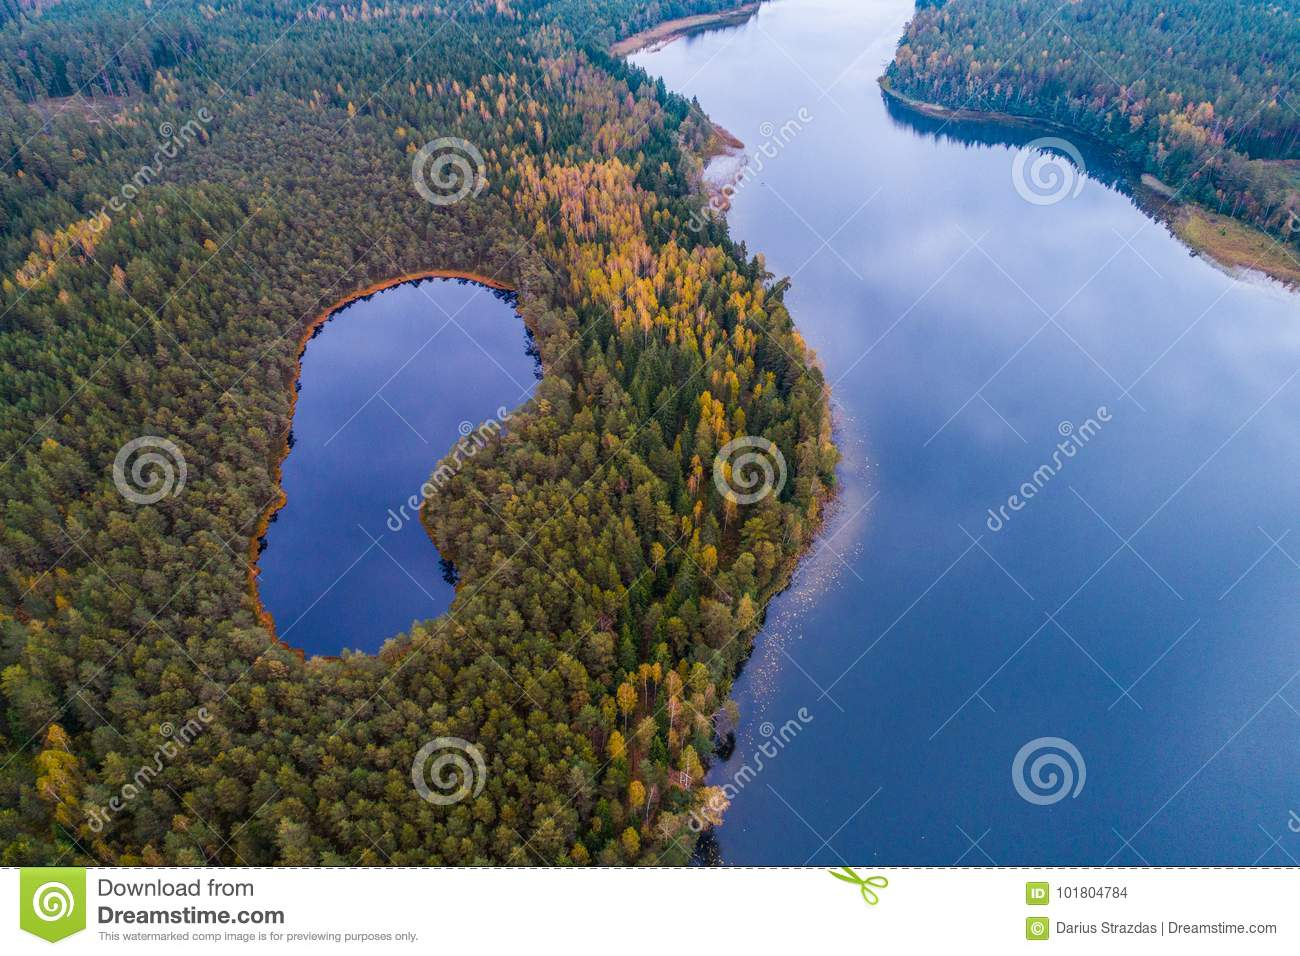 Aerial lake photography